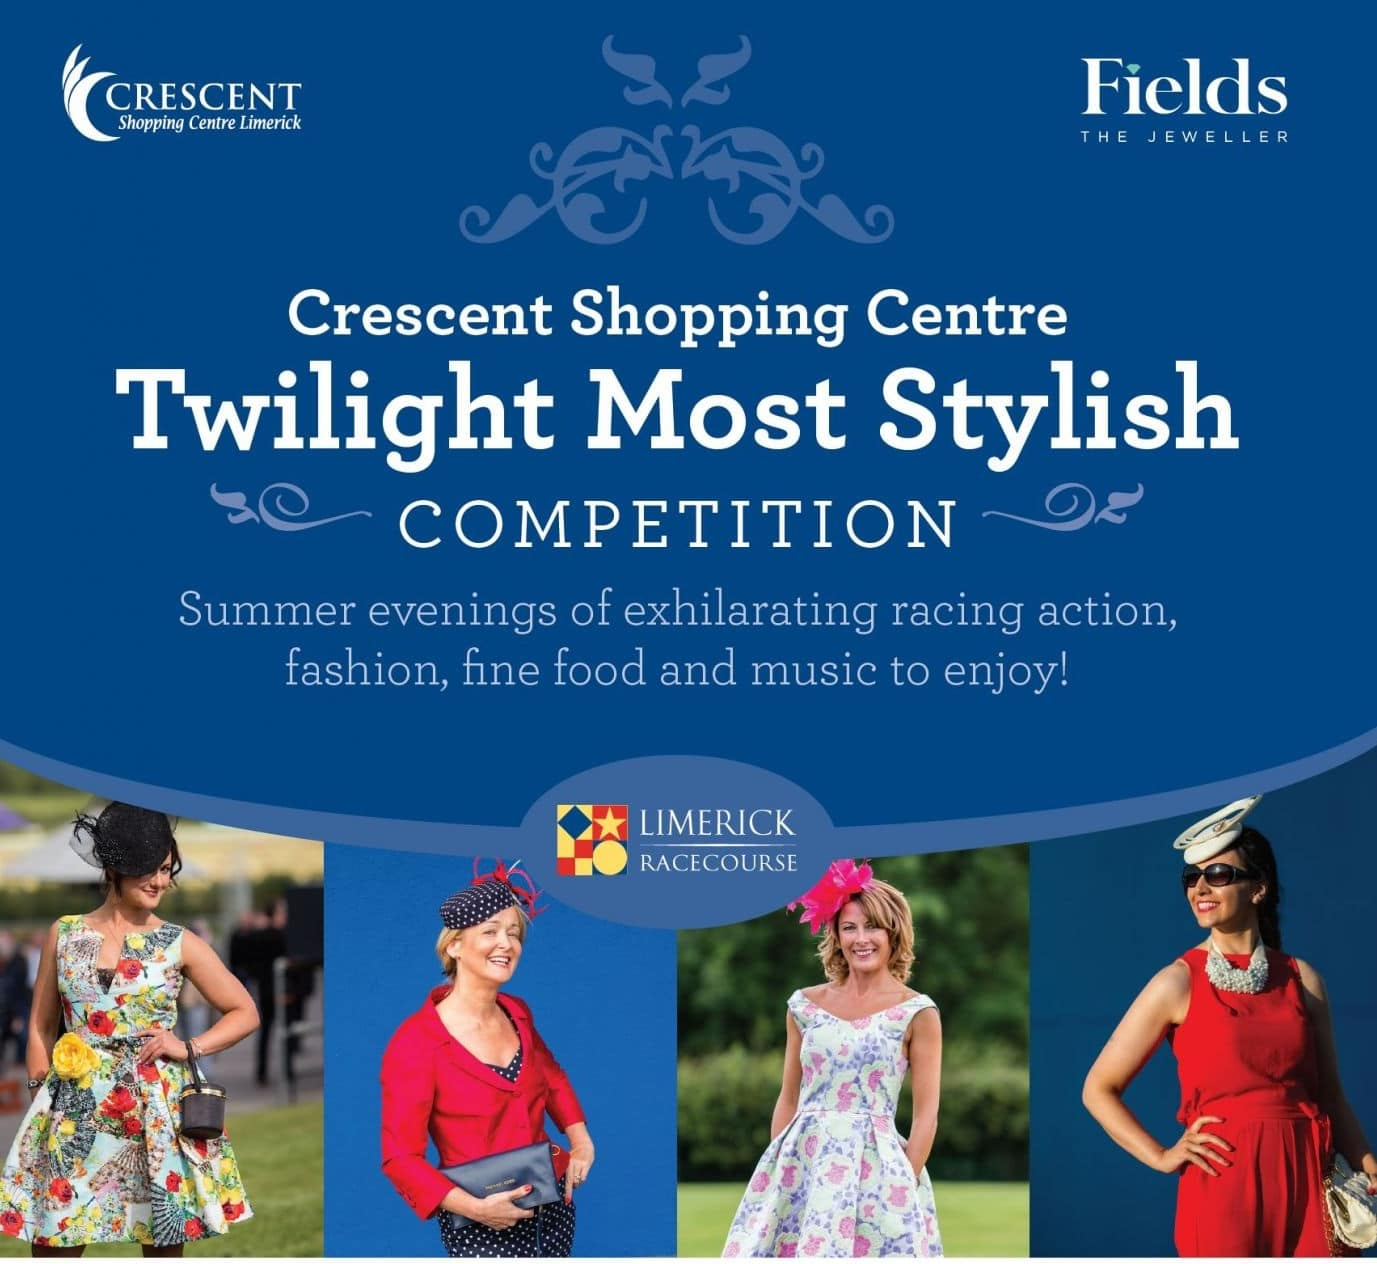 Crescent Shopping Centre Twilight Most Stylish